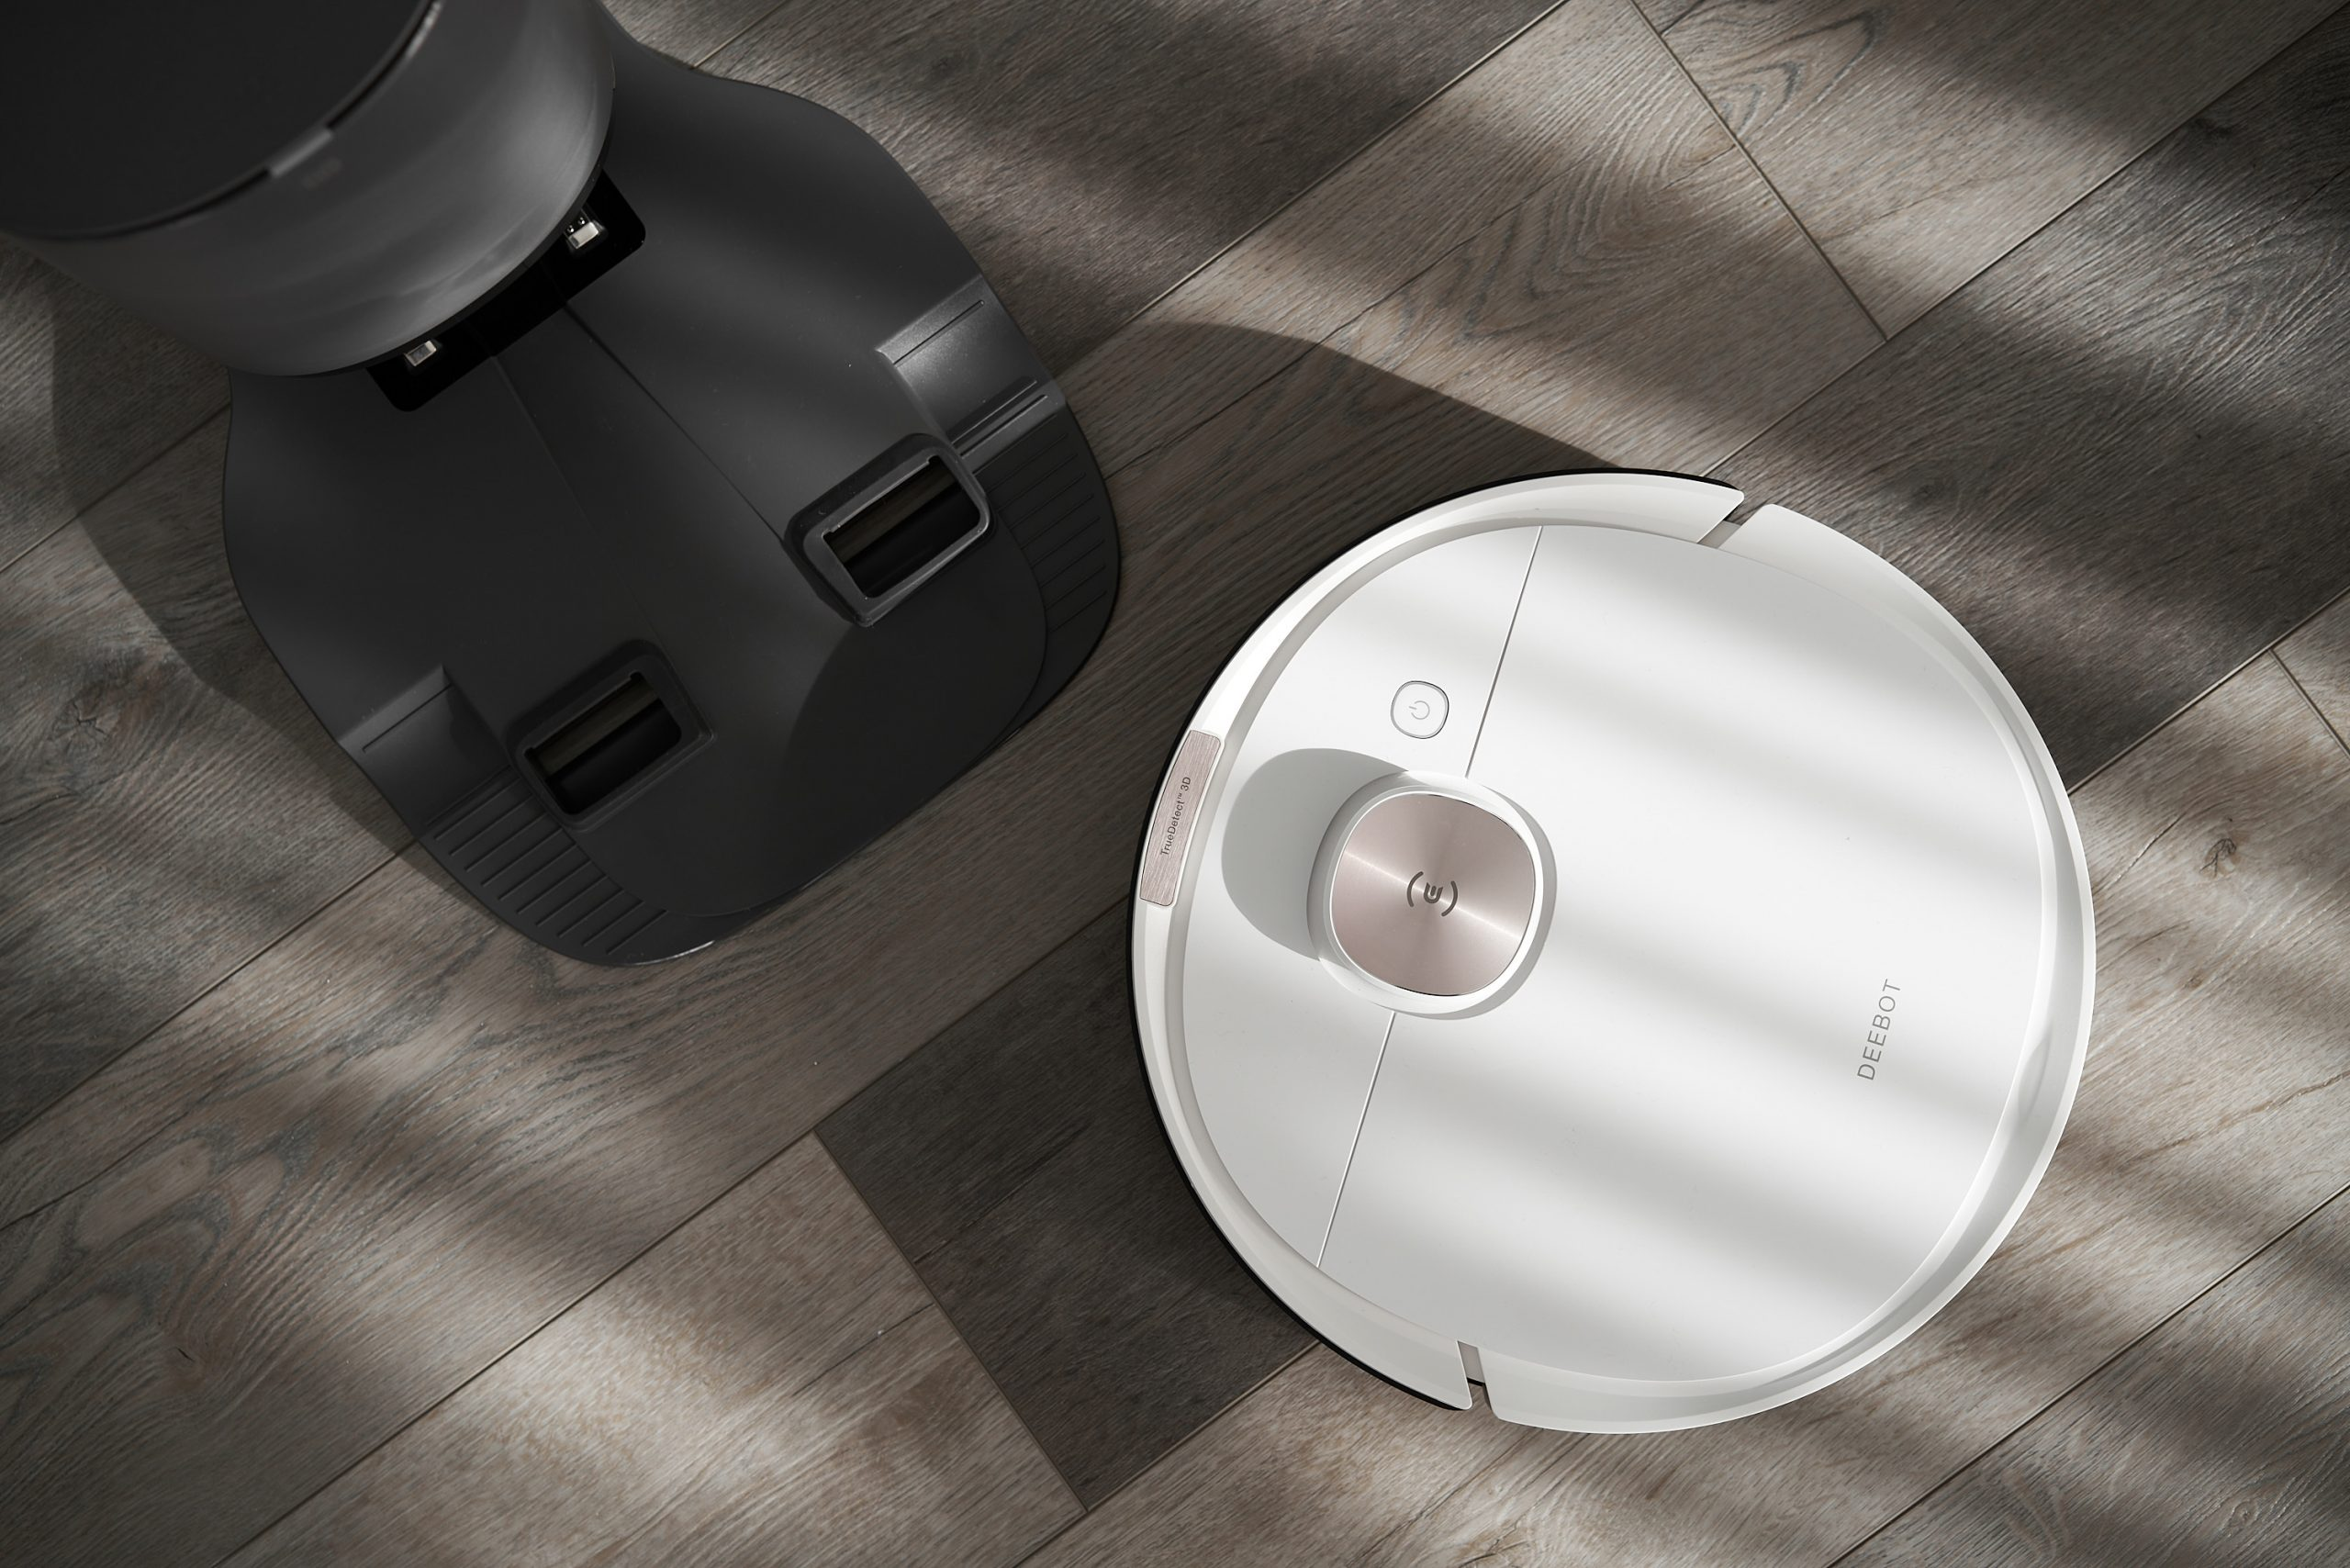 Automate Cleaning To Work From Home Productively — ECOVACS ROBOTICS Deebot Ozmo T8+ Review — Robotic Vacuums — HEY GENTS